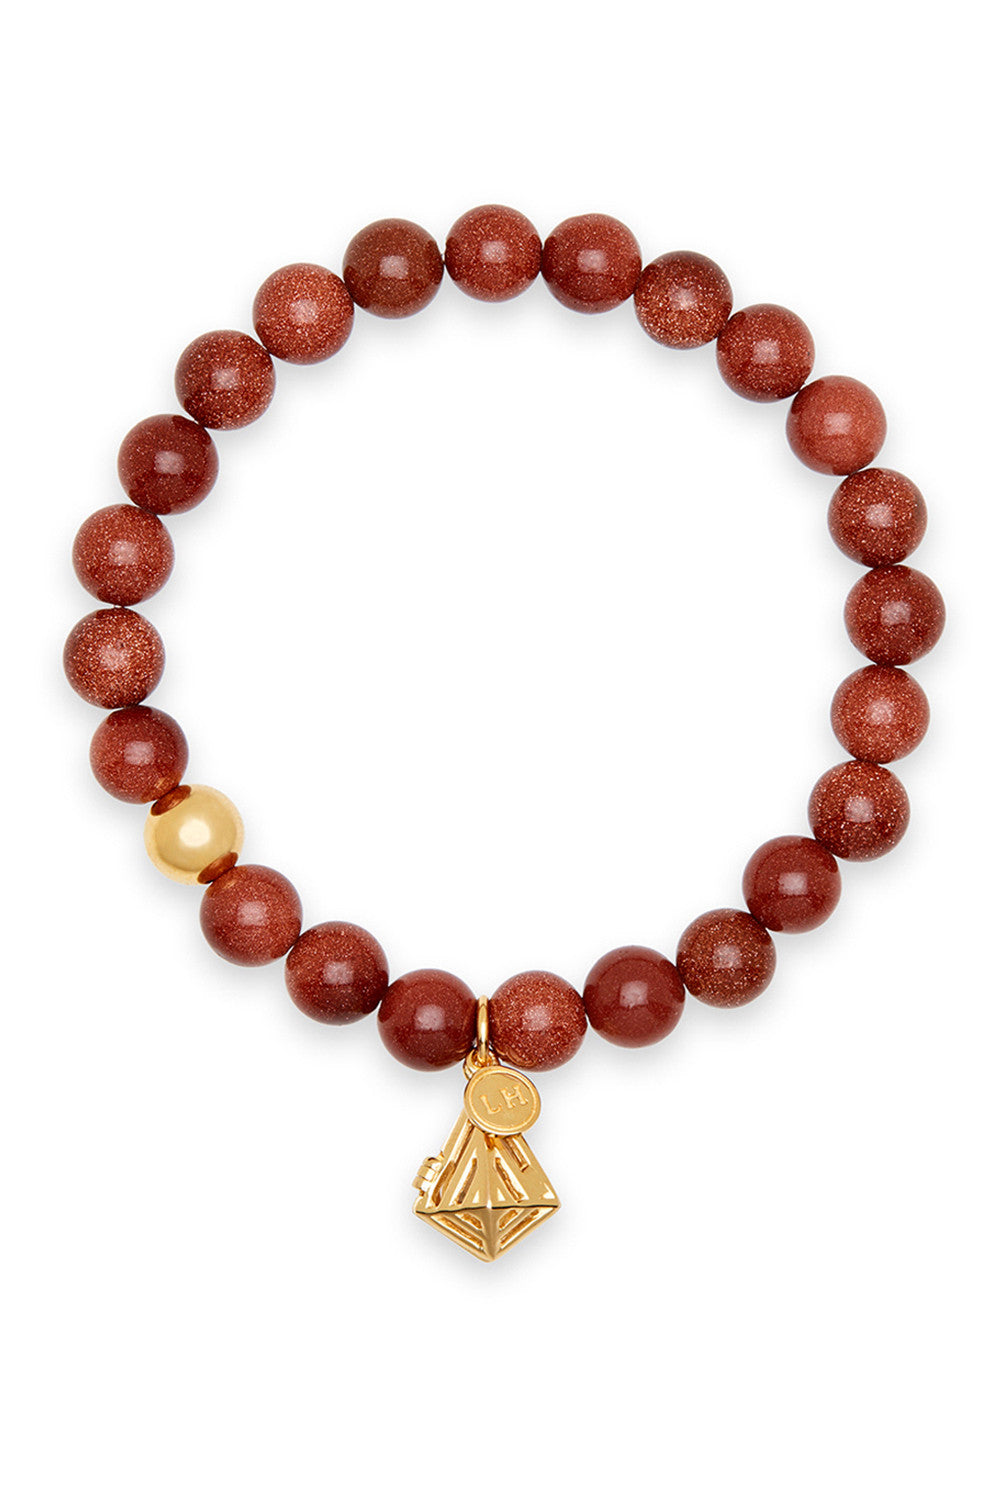 Cauda Bracelet with Geo-Gem Charm